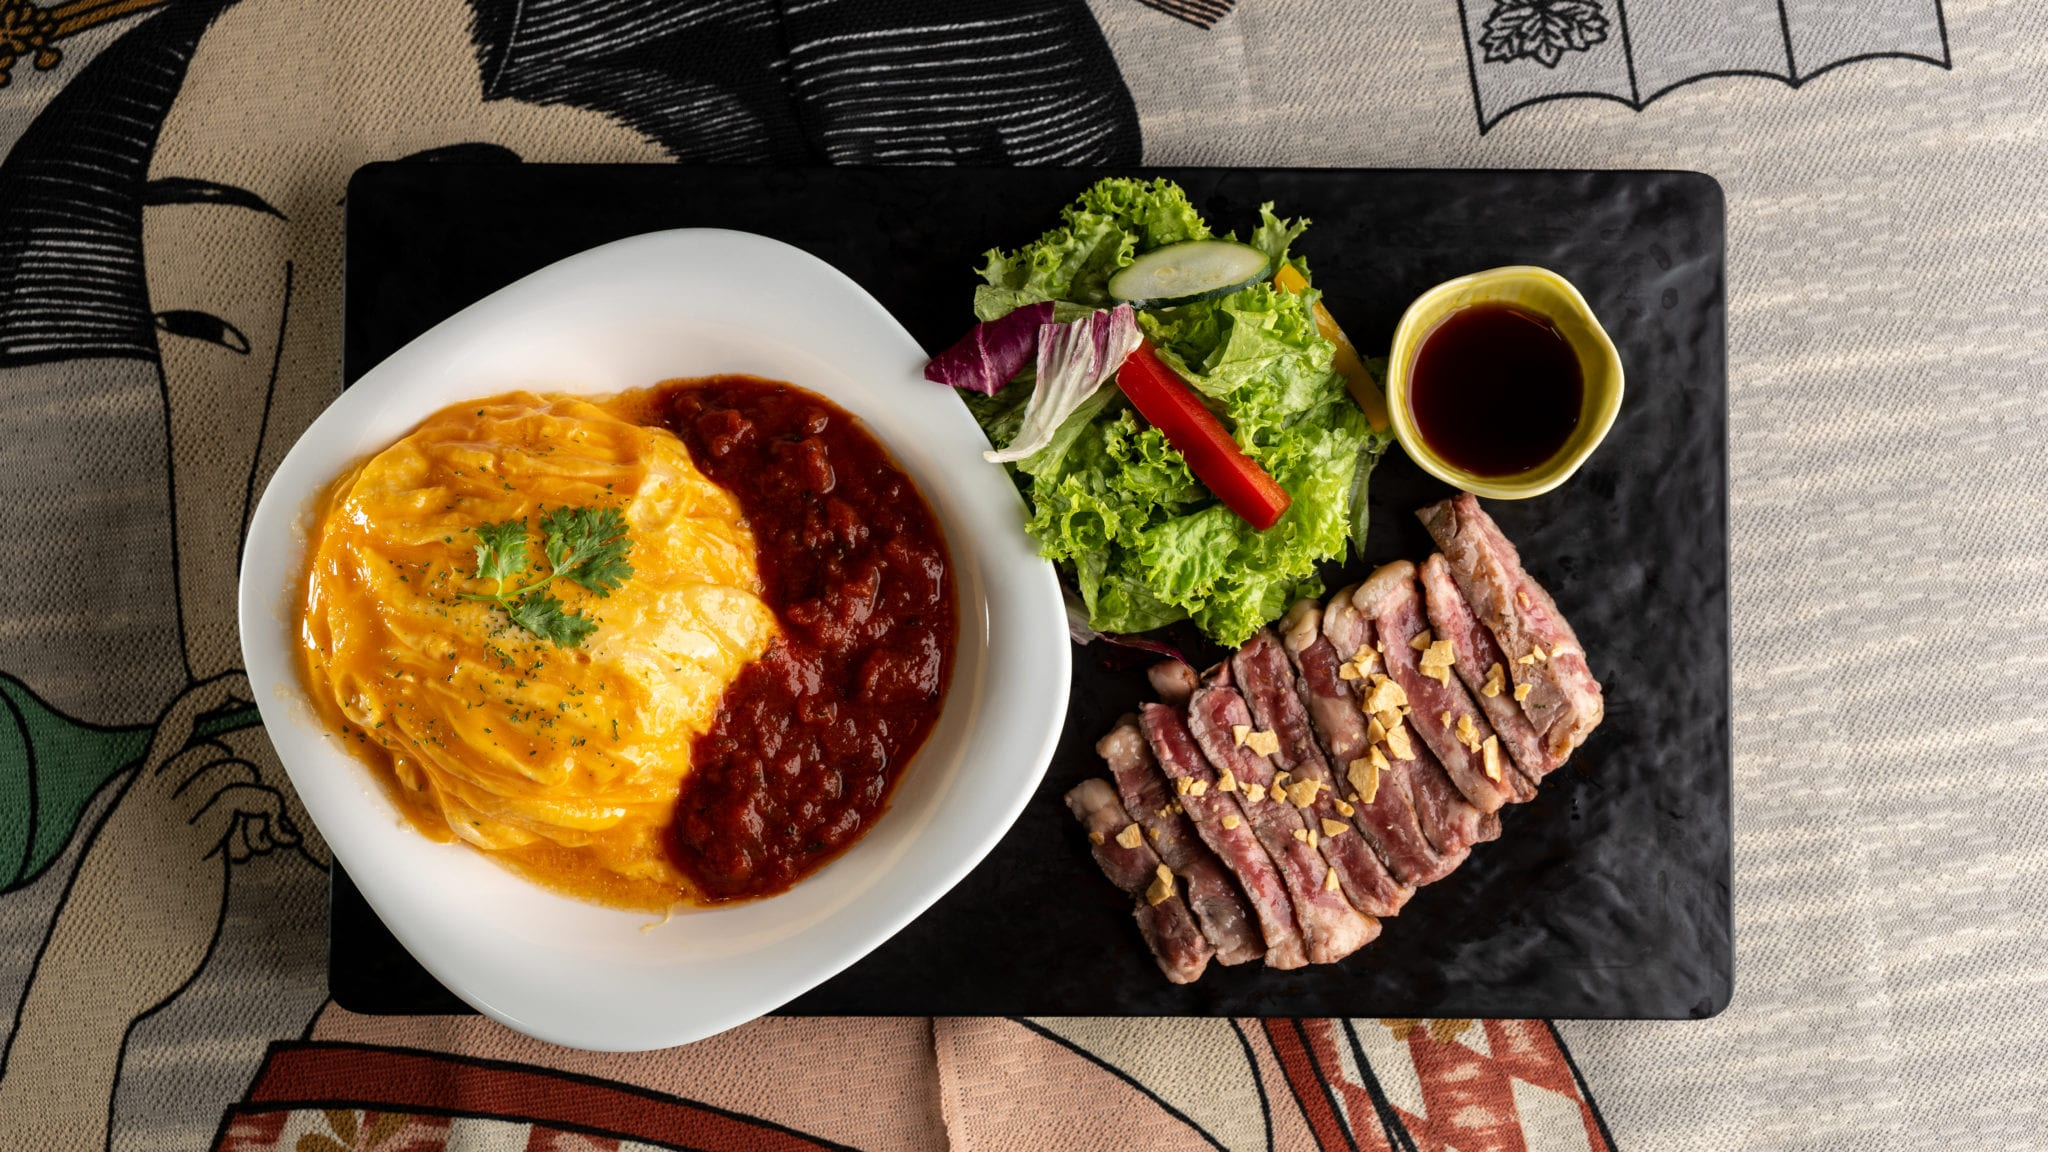 omelette on rice with sauce and steak and salad